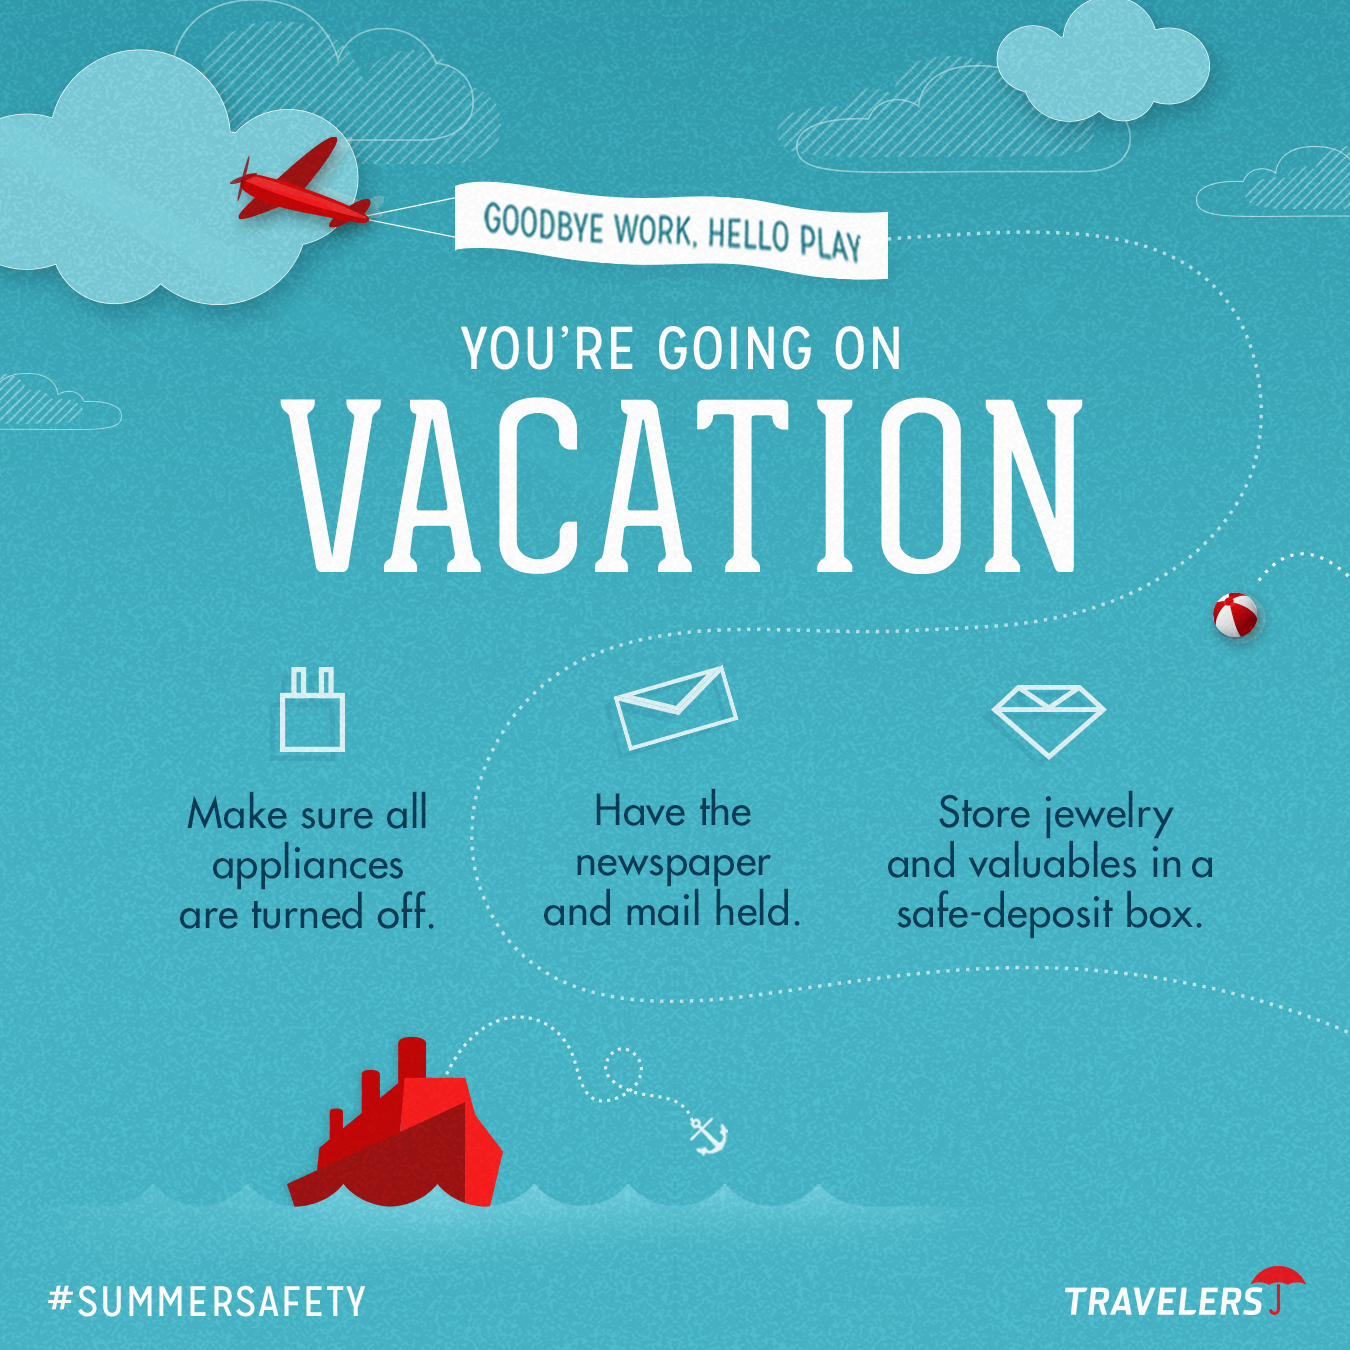 Vacation Checklist! Help your insurance customers avoid ...